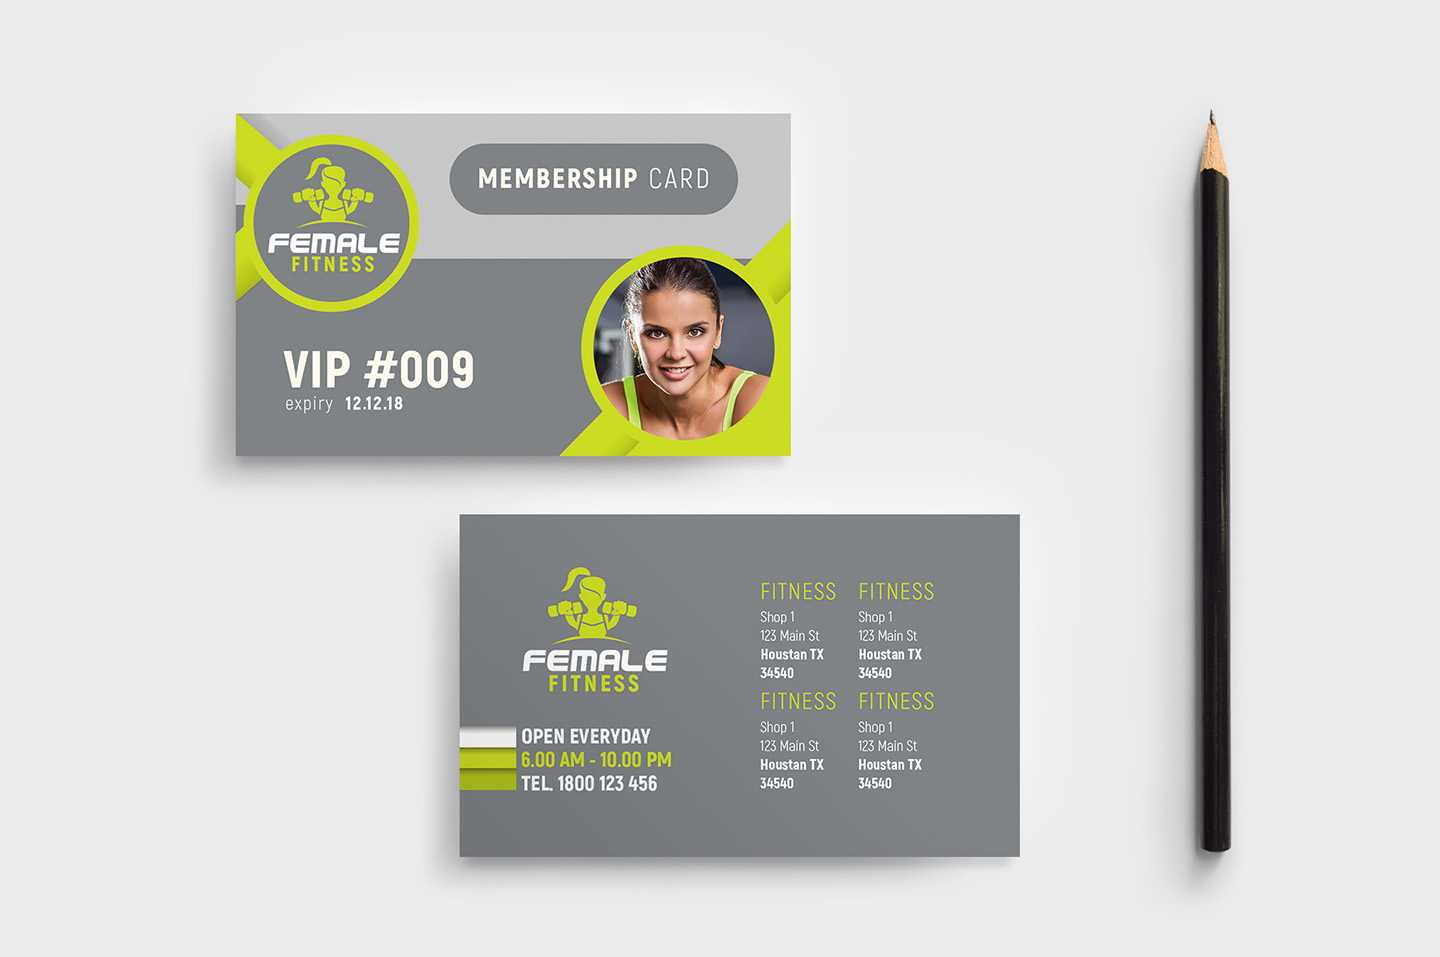 Female Fitness Membership Card Template In Psd, Ai With Template For Membership Cards